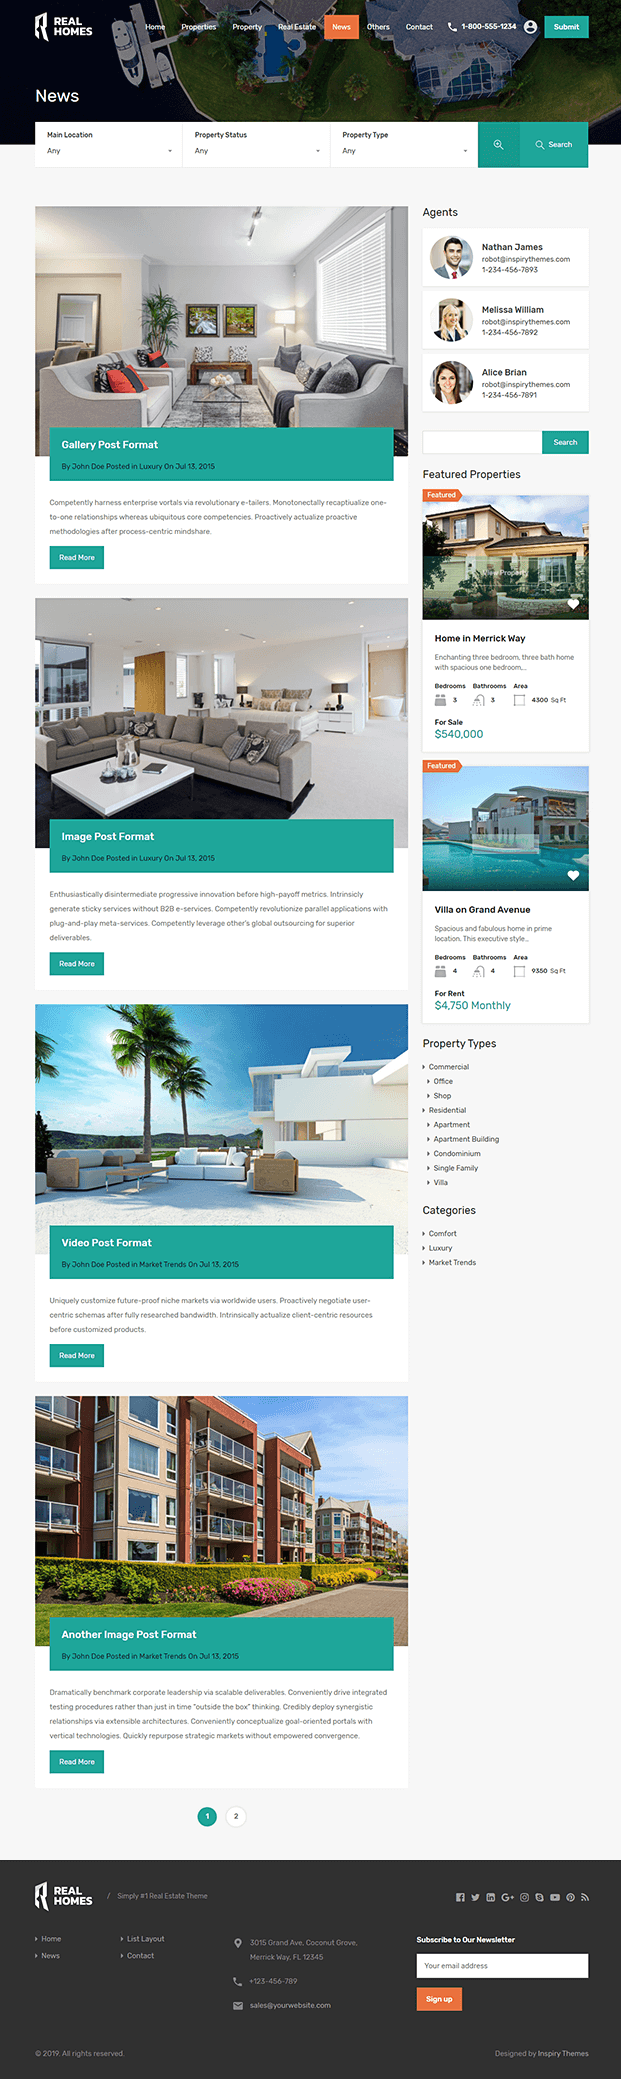 News - WP Real Estate Theme